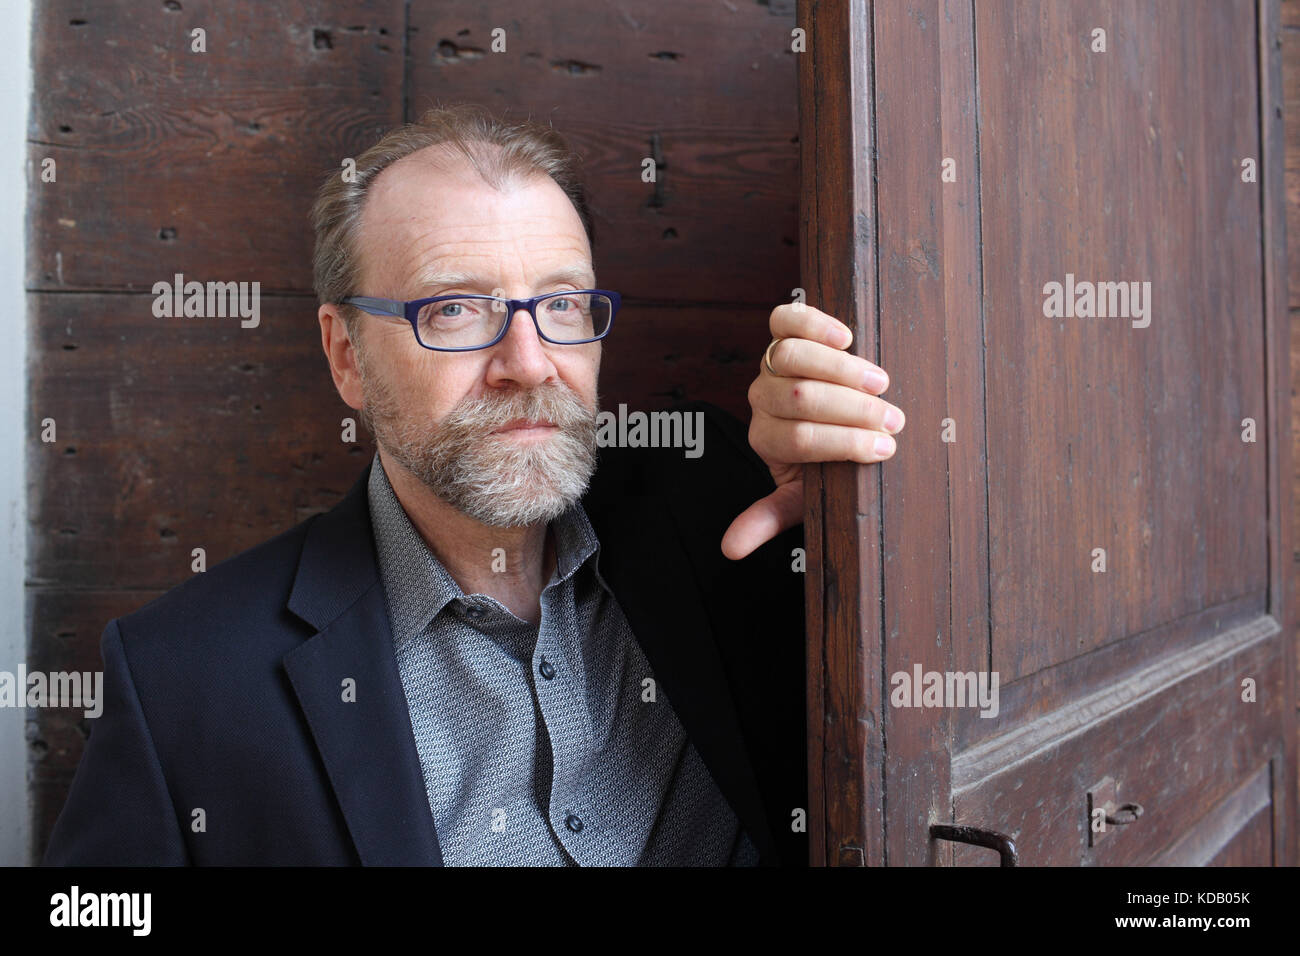 Portrait of George Saunders 13/09/2017 ©Basso CANNARSA/Opale Stock Photo